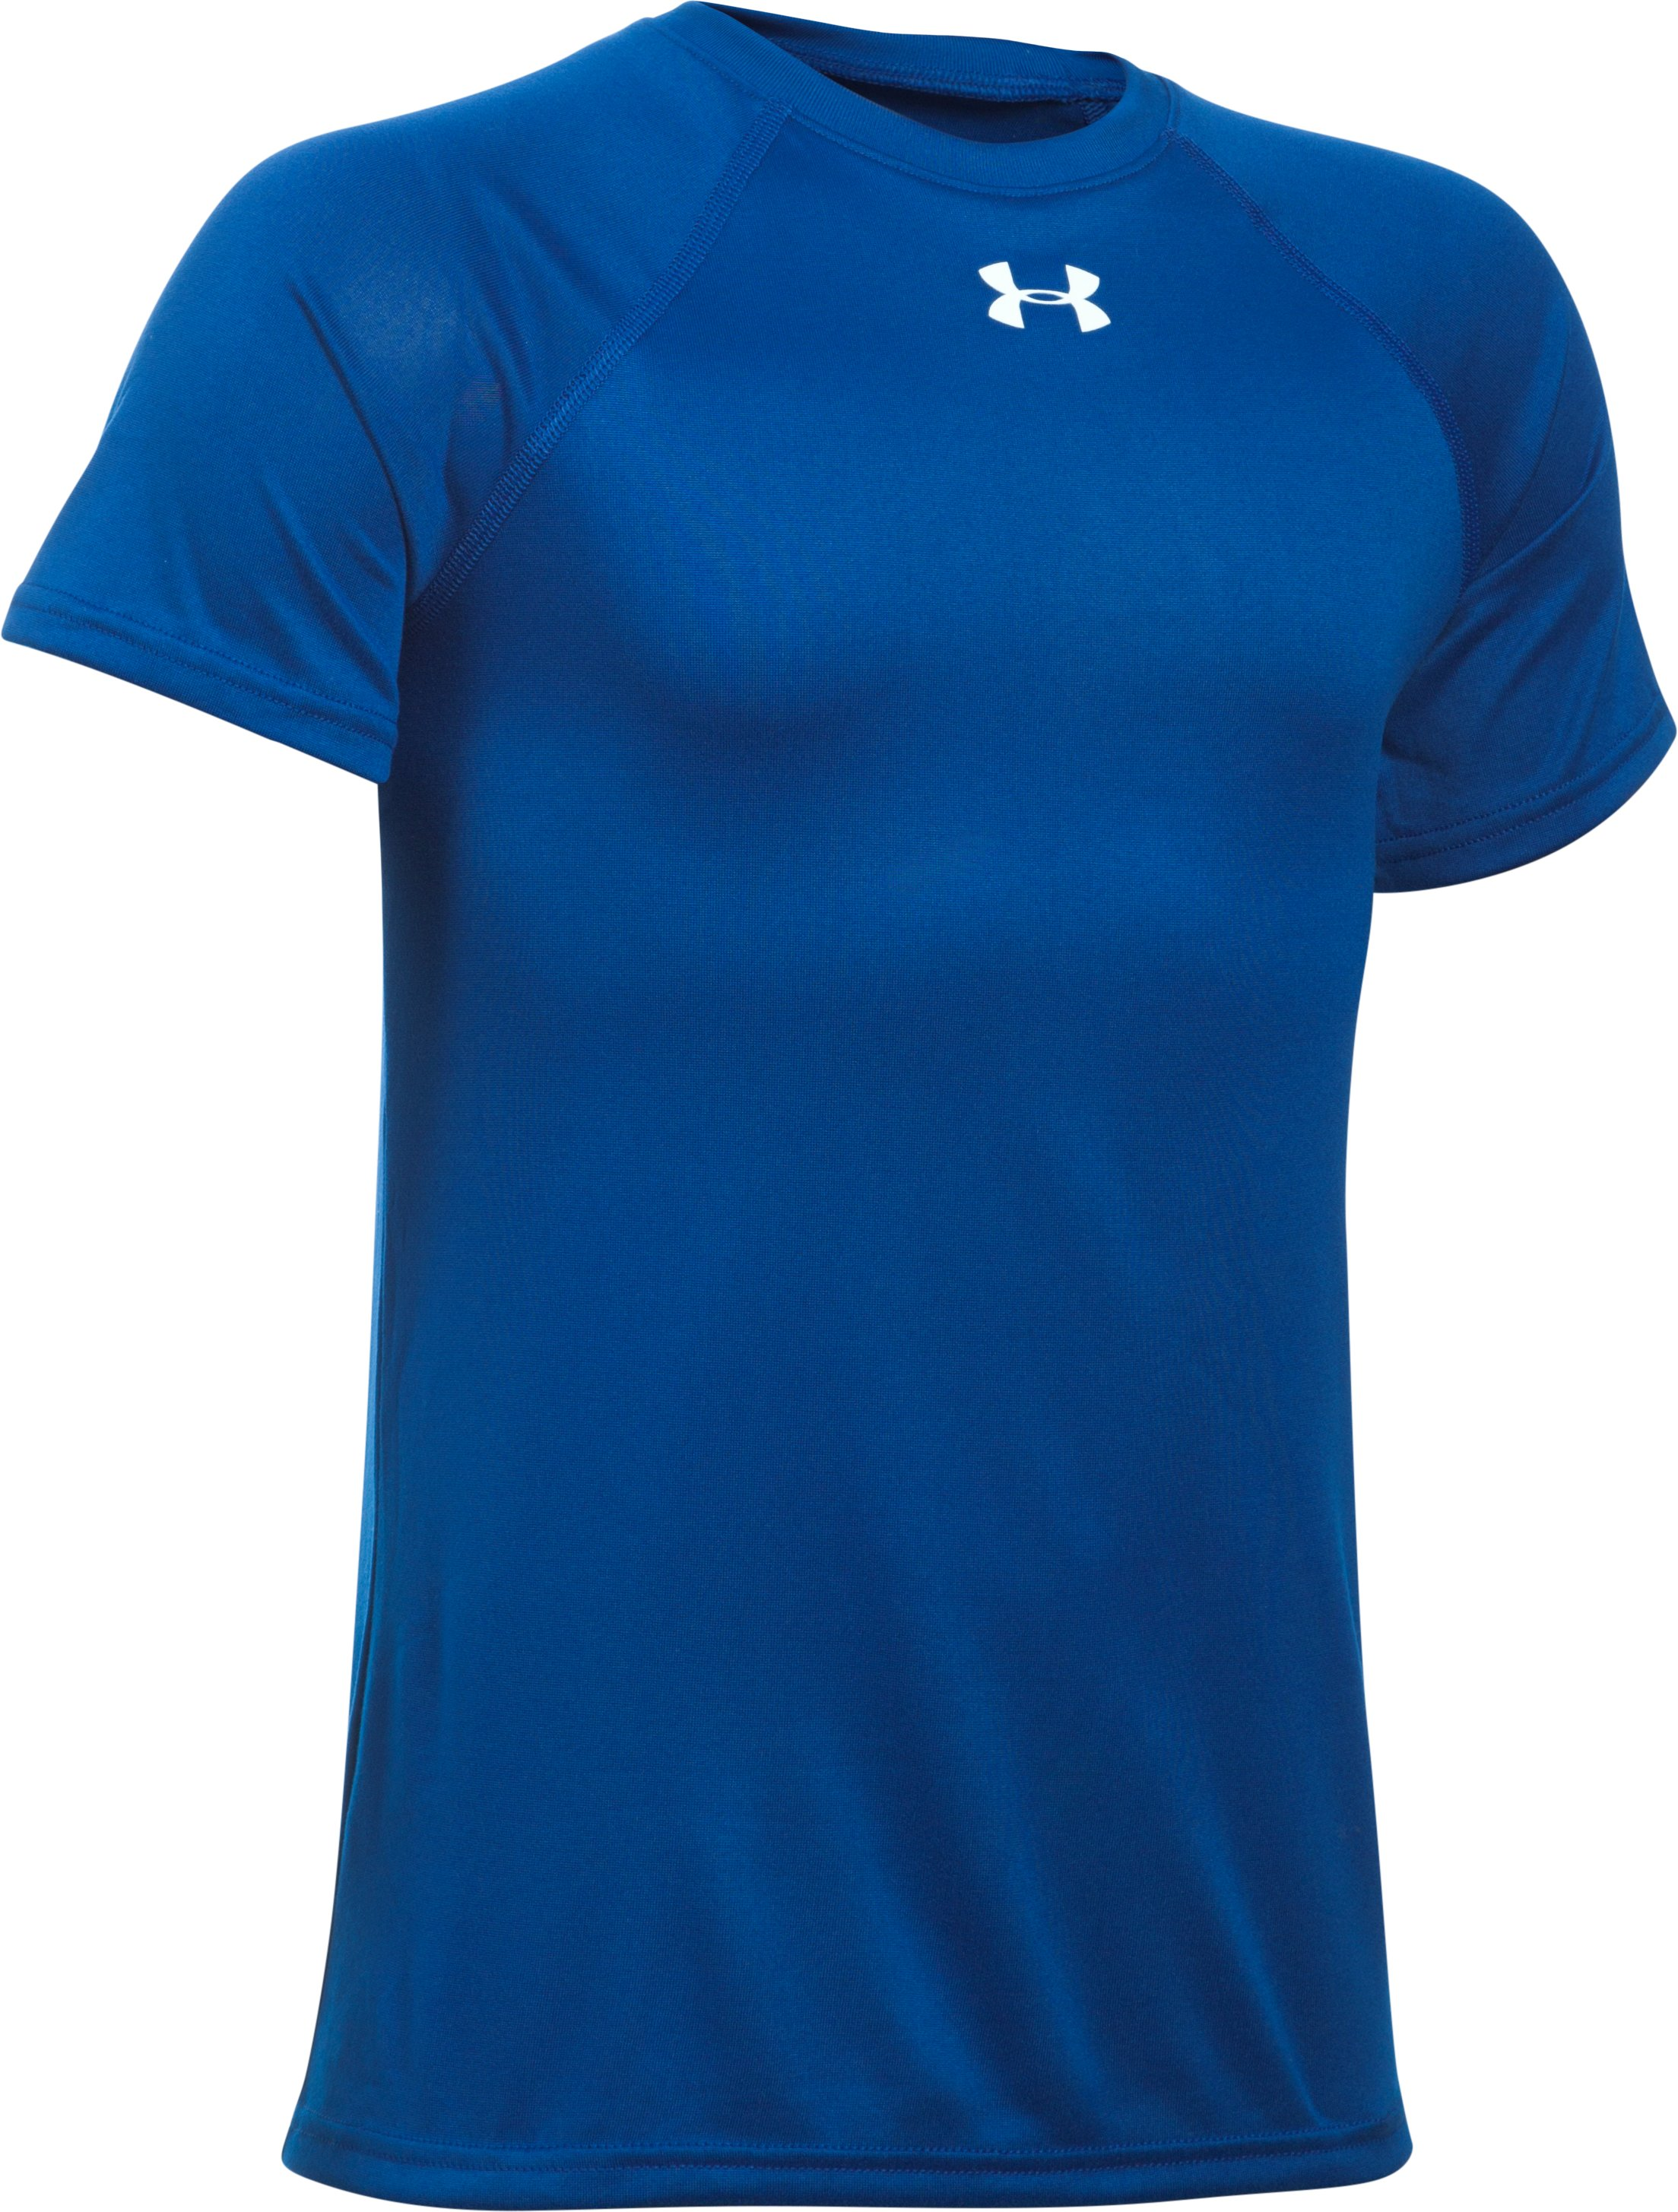 Boys' UA Locker Short Sleeve T-Shirt, Royal, zoomed image